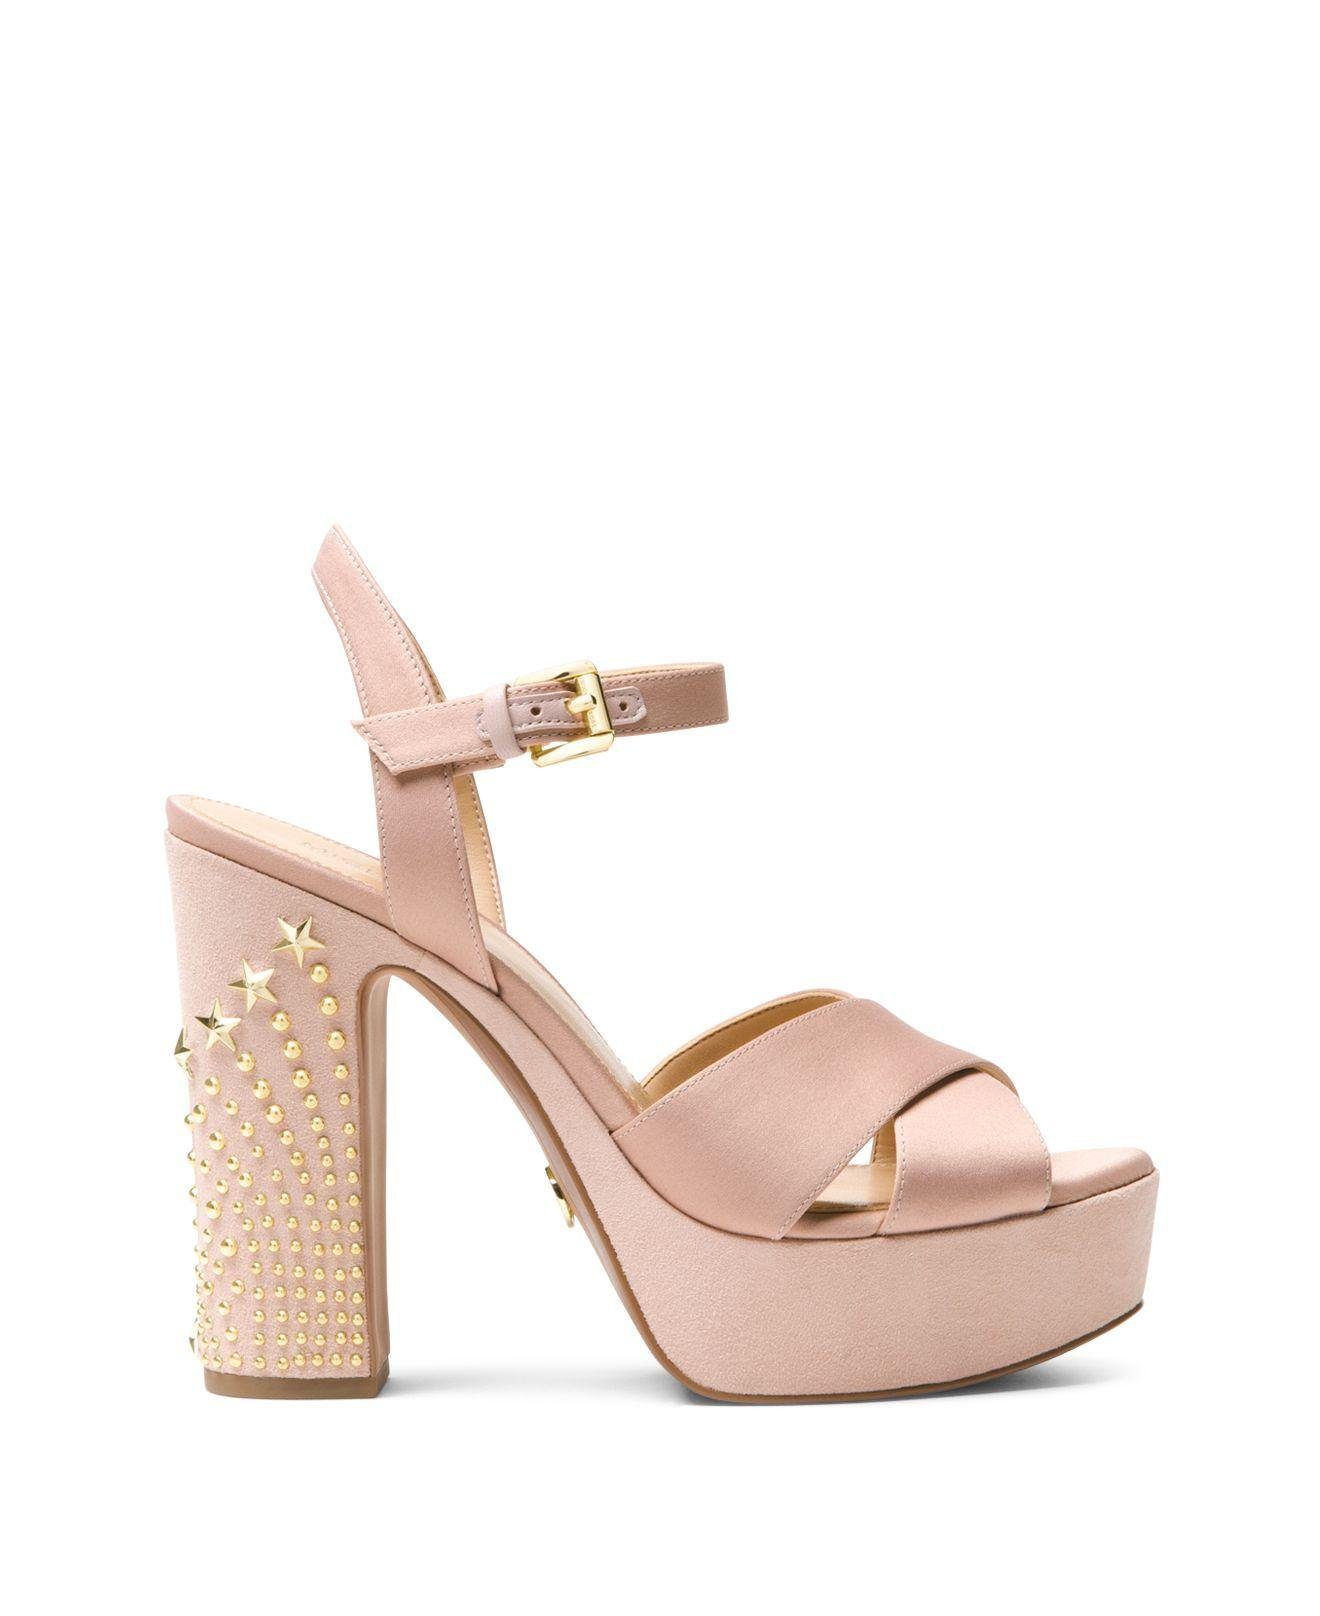 fe67064be71 Lyst - MICHAEL Michael Kors Women s Sia Studded Suede   Satin ...